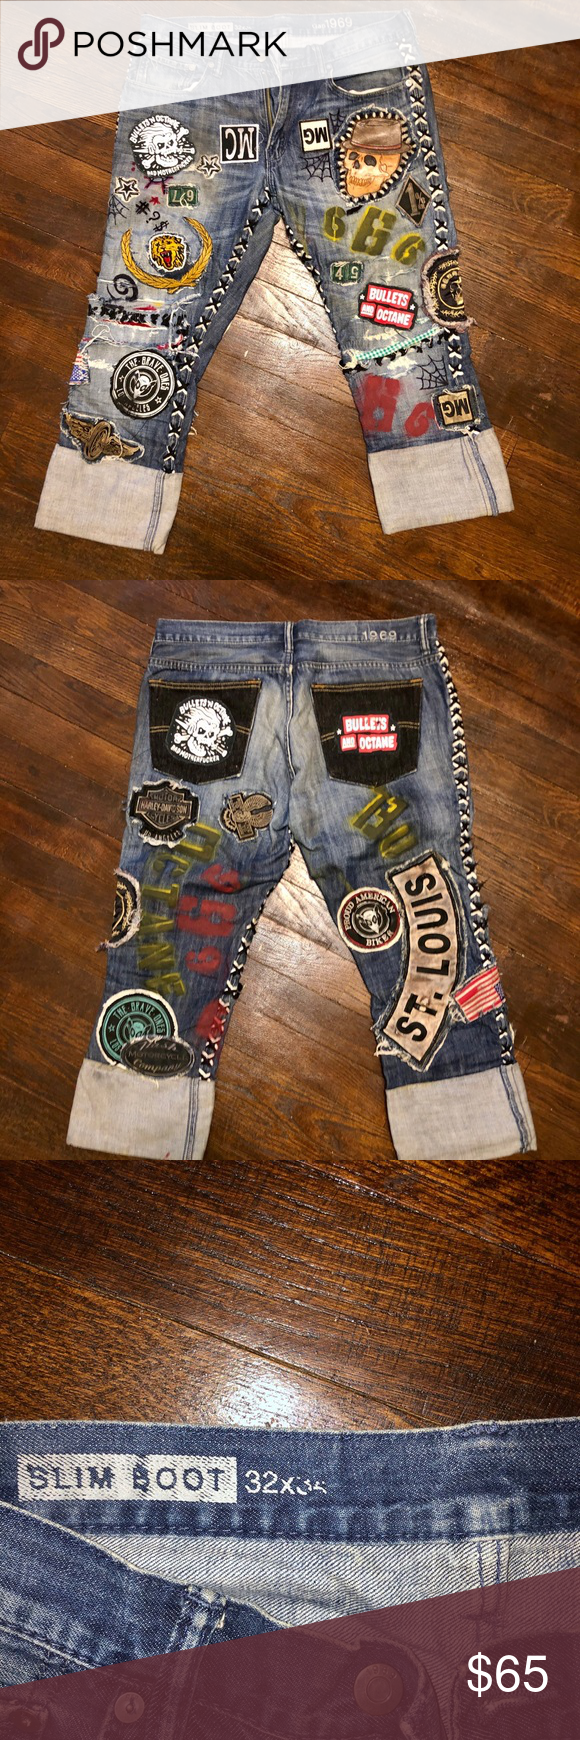 Custom jeans punk rock and roll pirate denim 32 Custom jeans punk rock and roll pirate denim 32 x 34 but the cuffs are rolled in photos! Handmade!! Originally gap men's jeans Slim boot cut. GAP Jeans Skinny #rockandrolloutfits